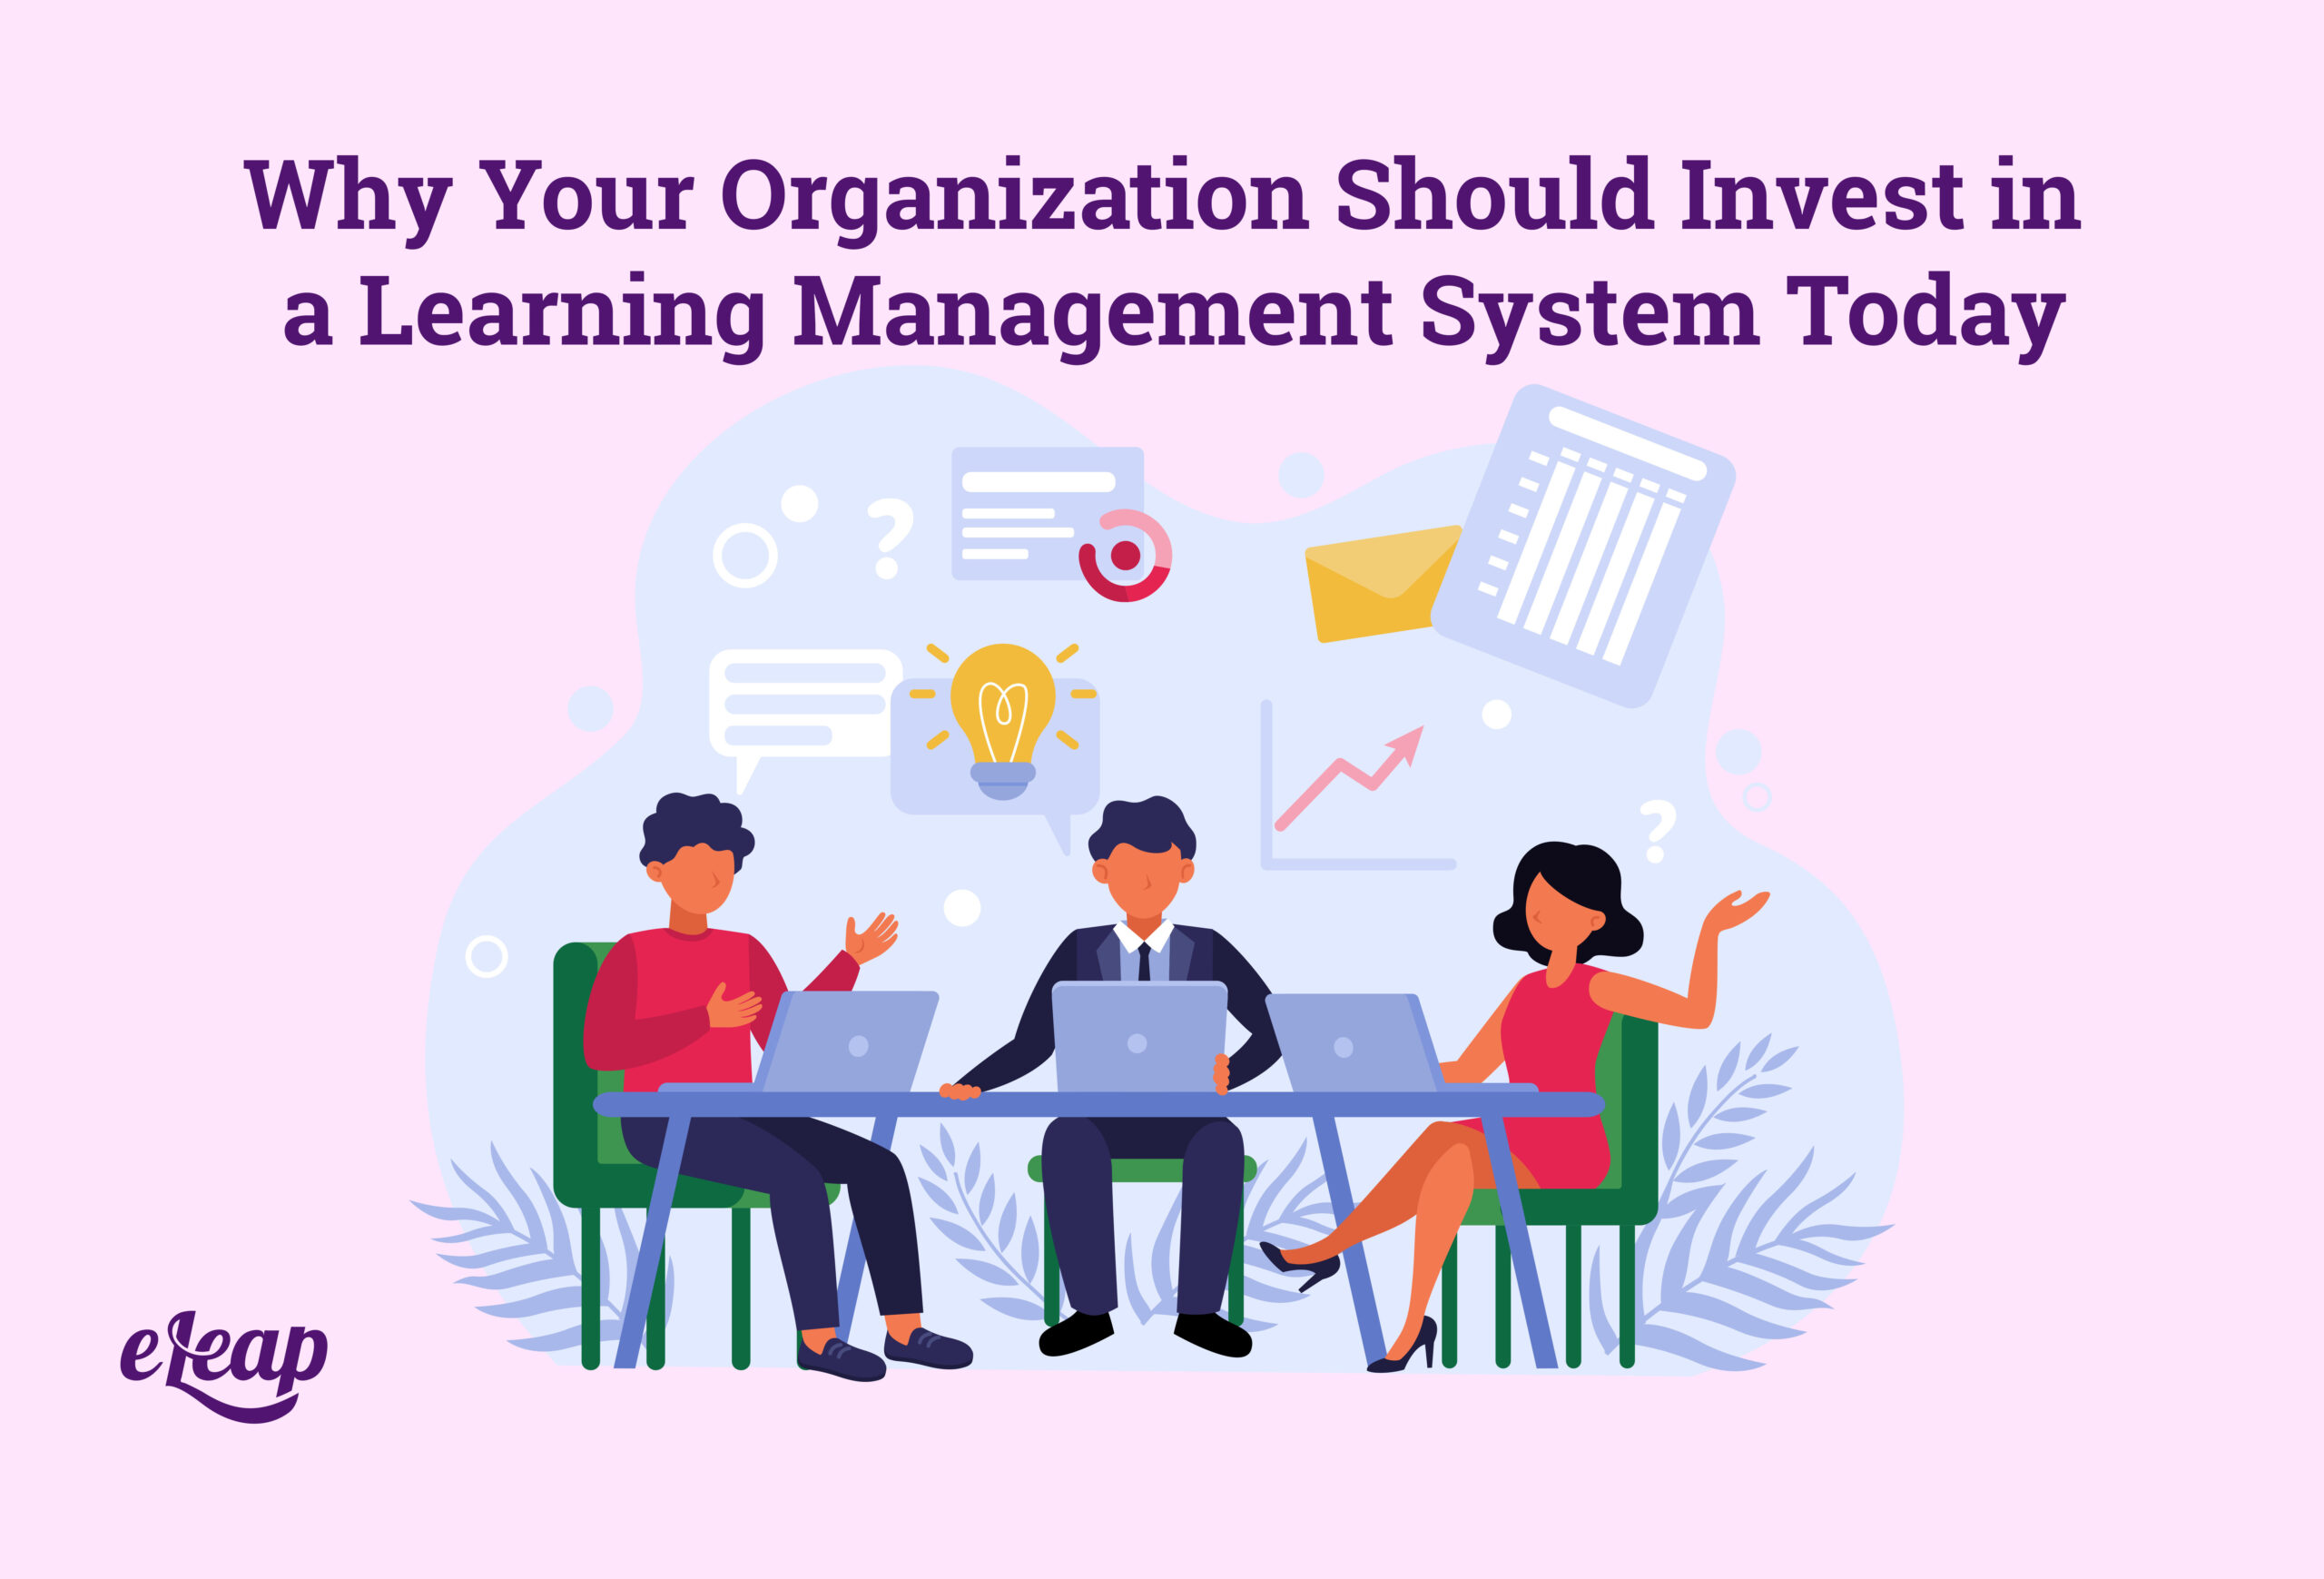 Why Your Organization Should Invest in a Learning Management System Today